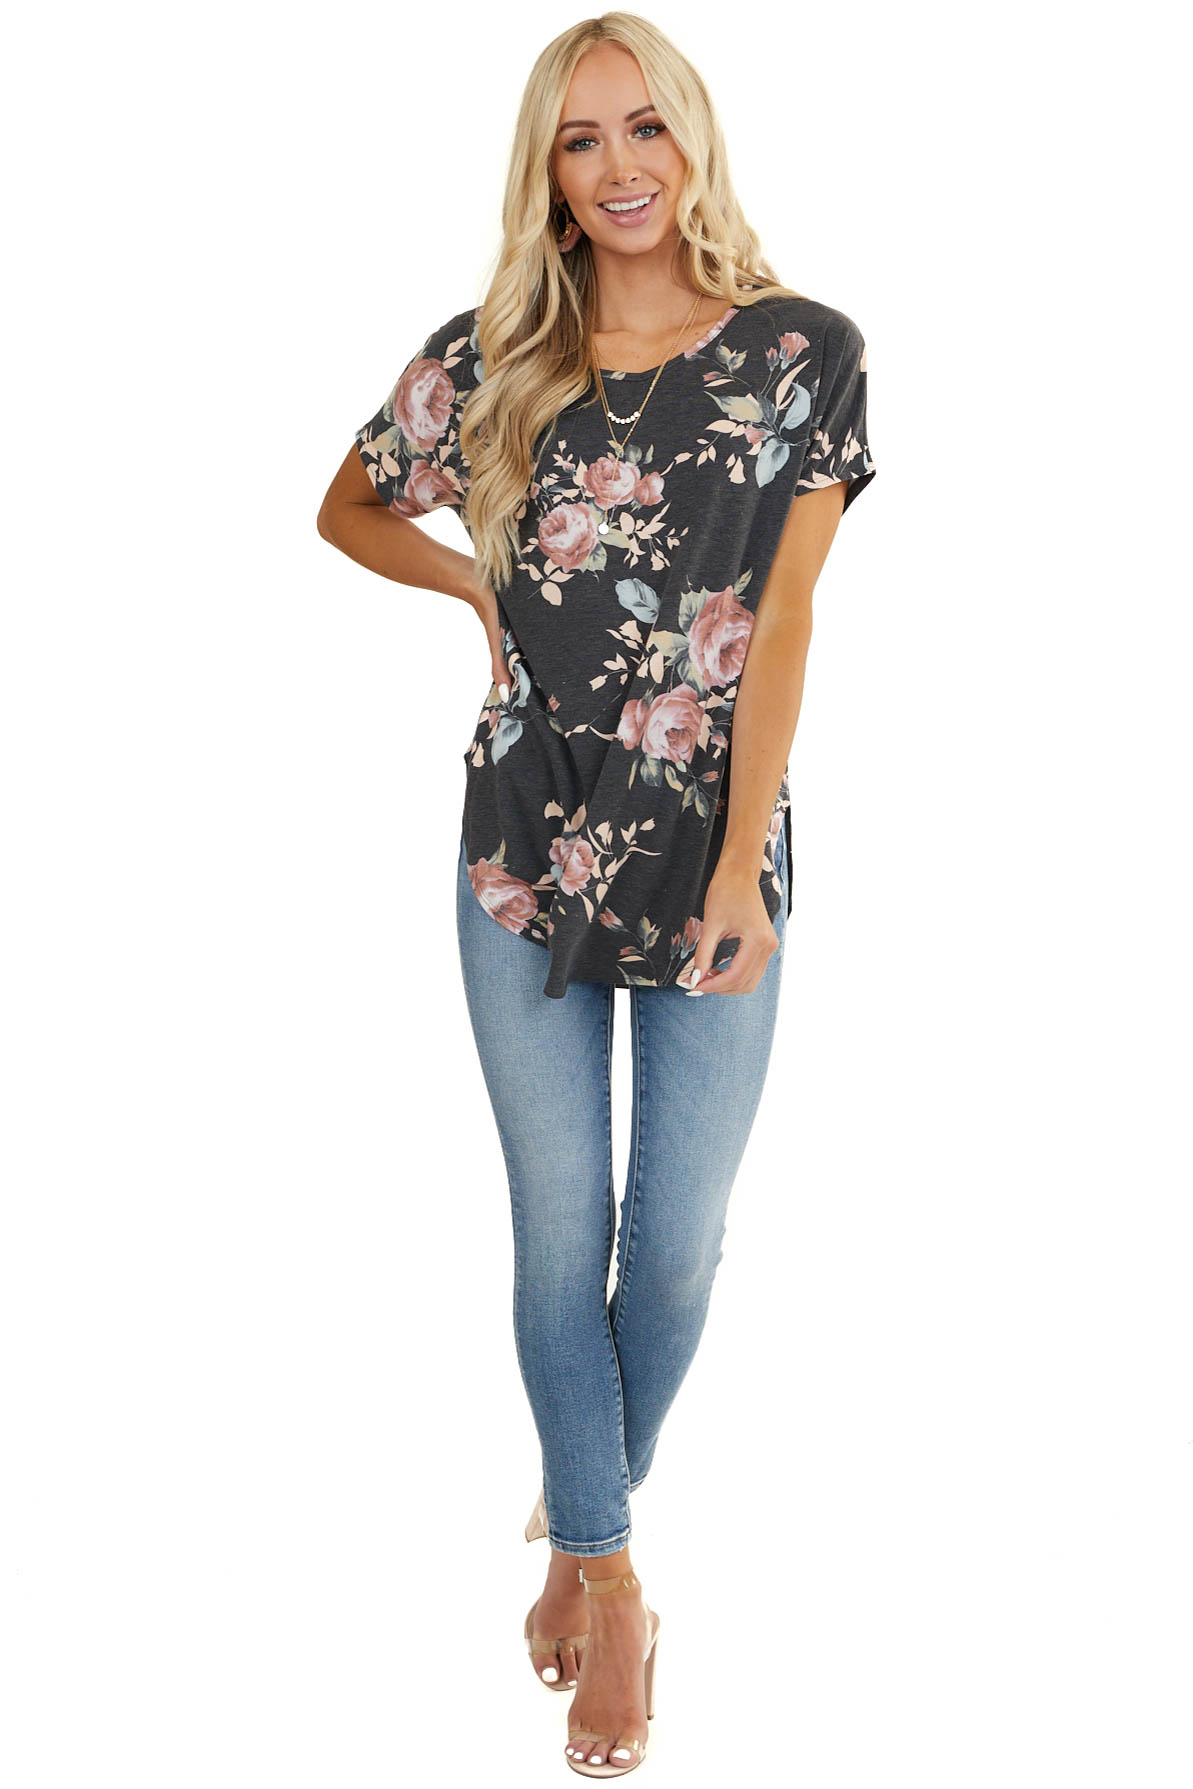 Charcoal Floral Print Short Sleeve Top with Rounded Hemline